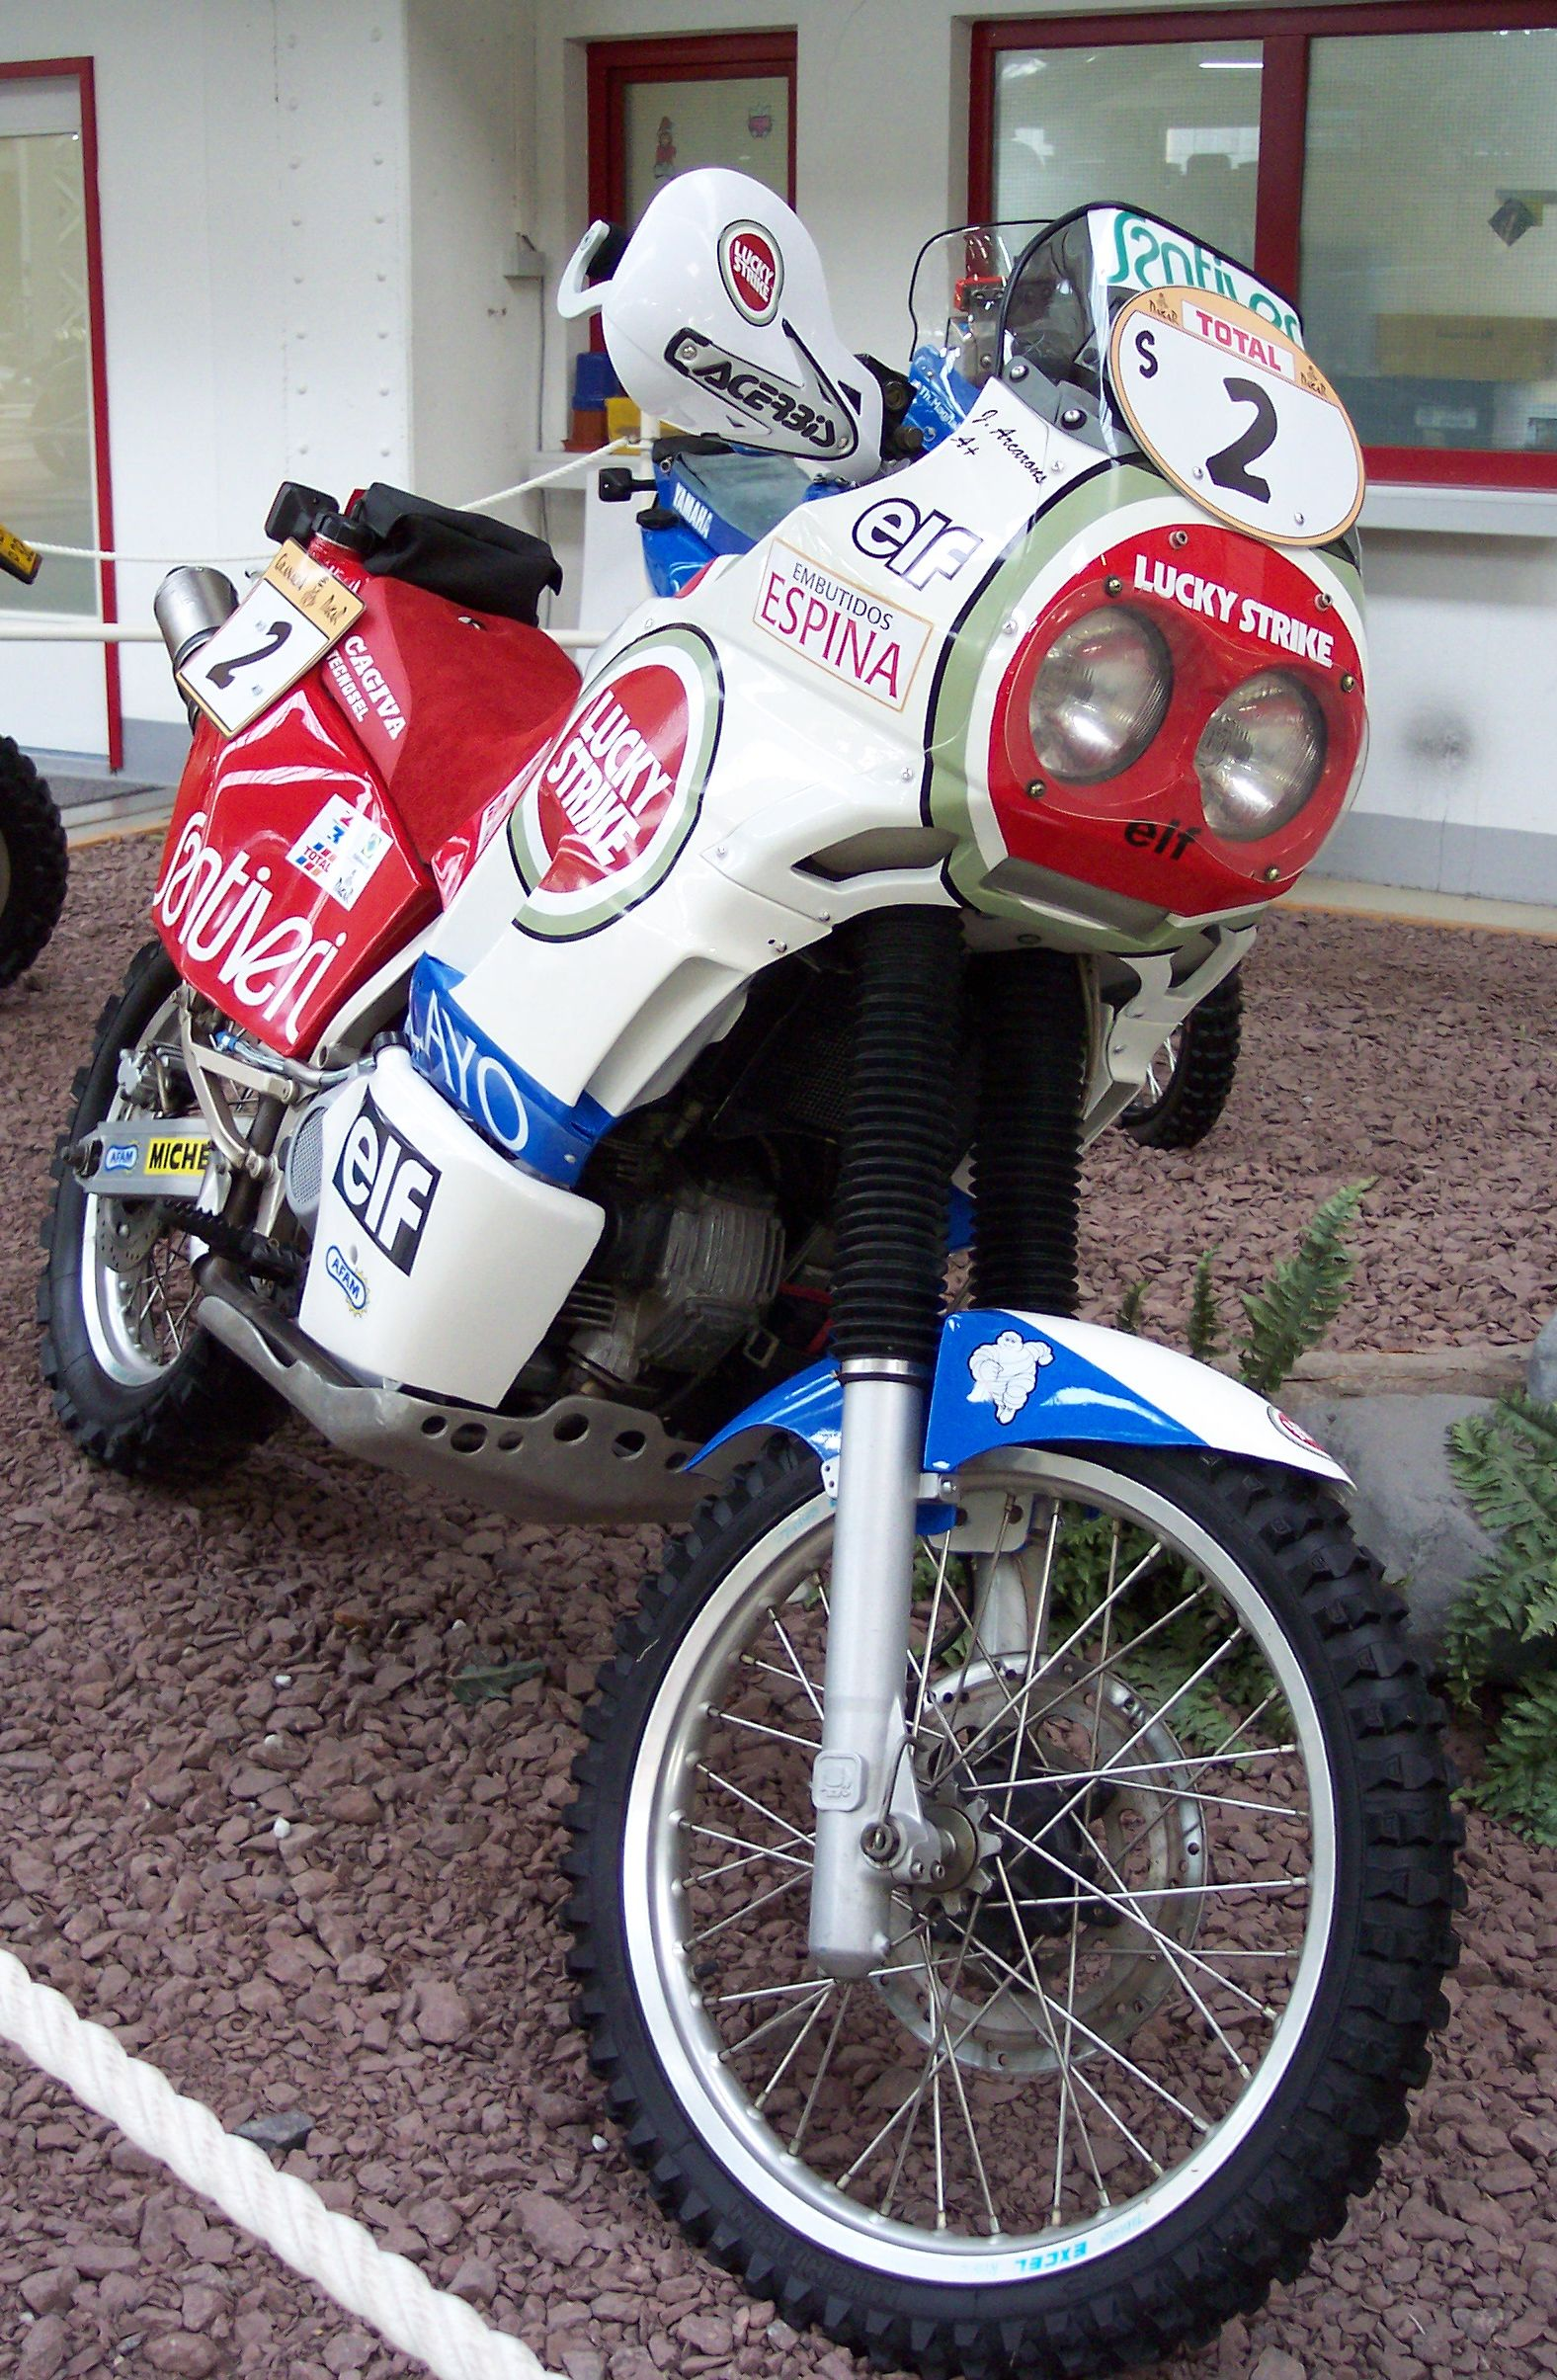 Cagiva Super City 125 1997 images #67233